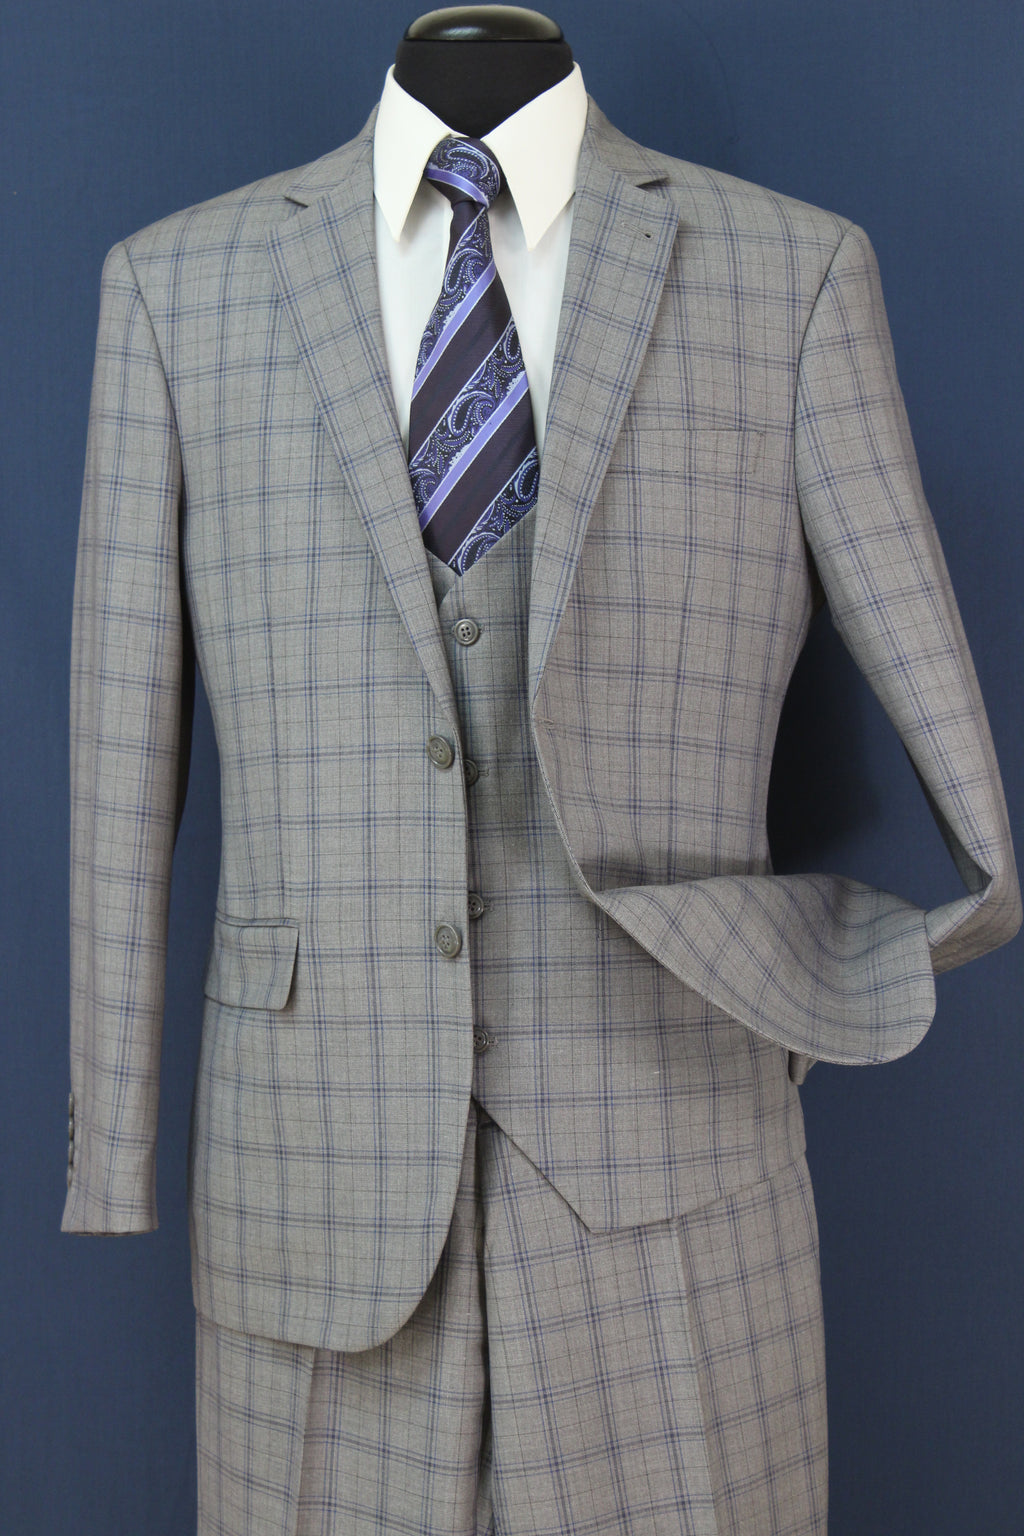 Premium Wool Blend Regular Fit 3 Pieces Single Breast 2 Buttons Gray Check - SUITS OUTLETS